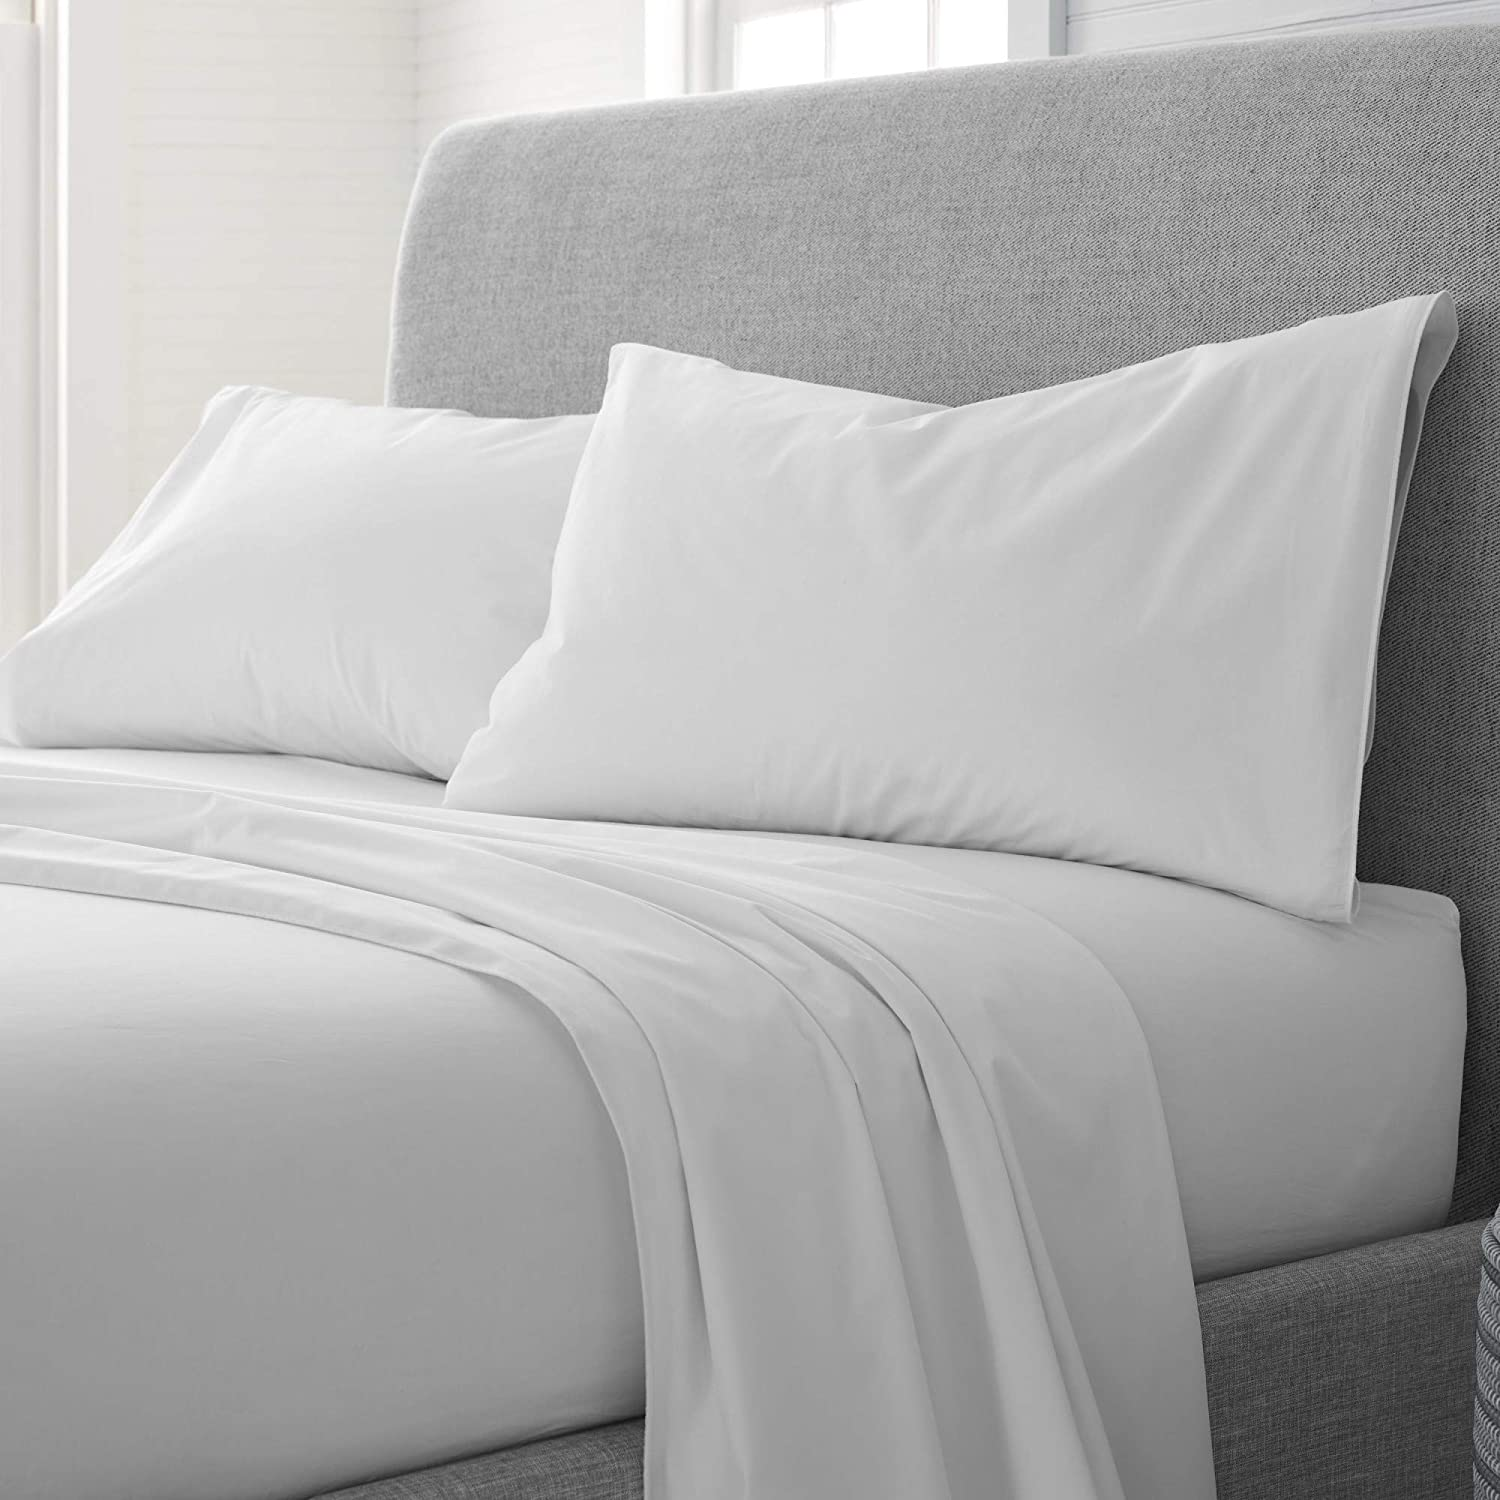 Cheap mail order shopping EcoPure Comfort Wash Sheet White Set New sales Full Soft